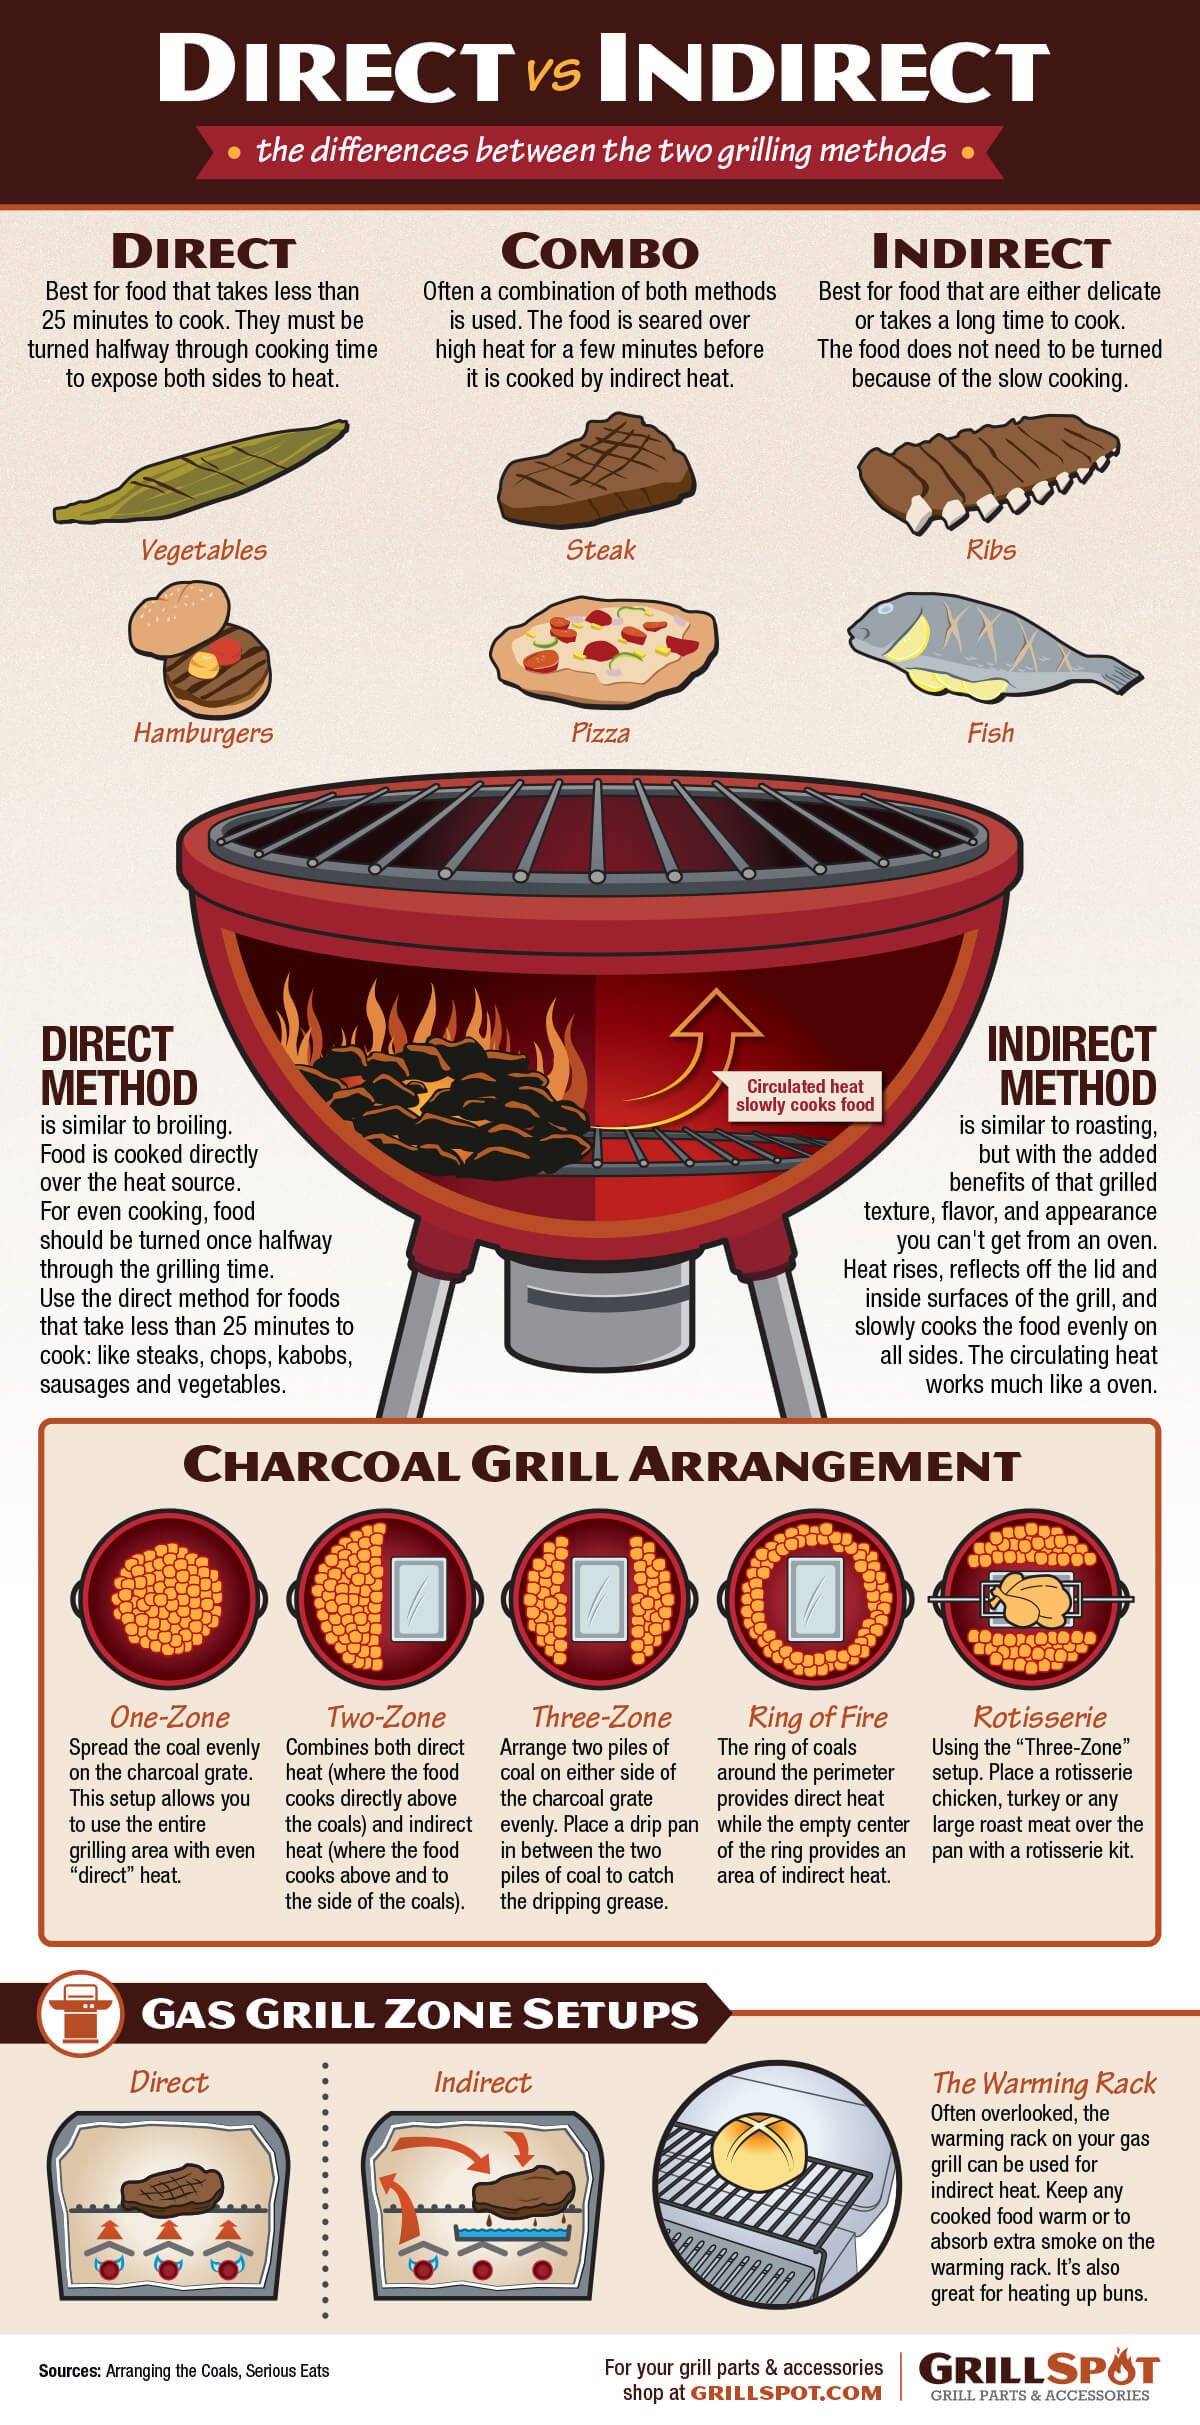 Direct vs. Indirect Grilling Methods Infographic